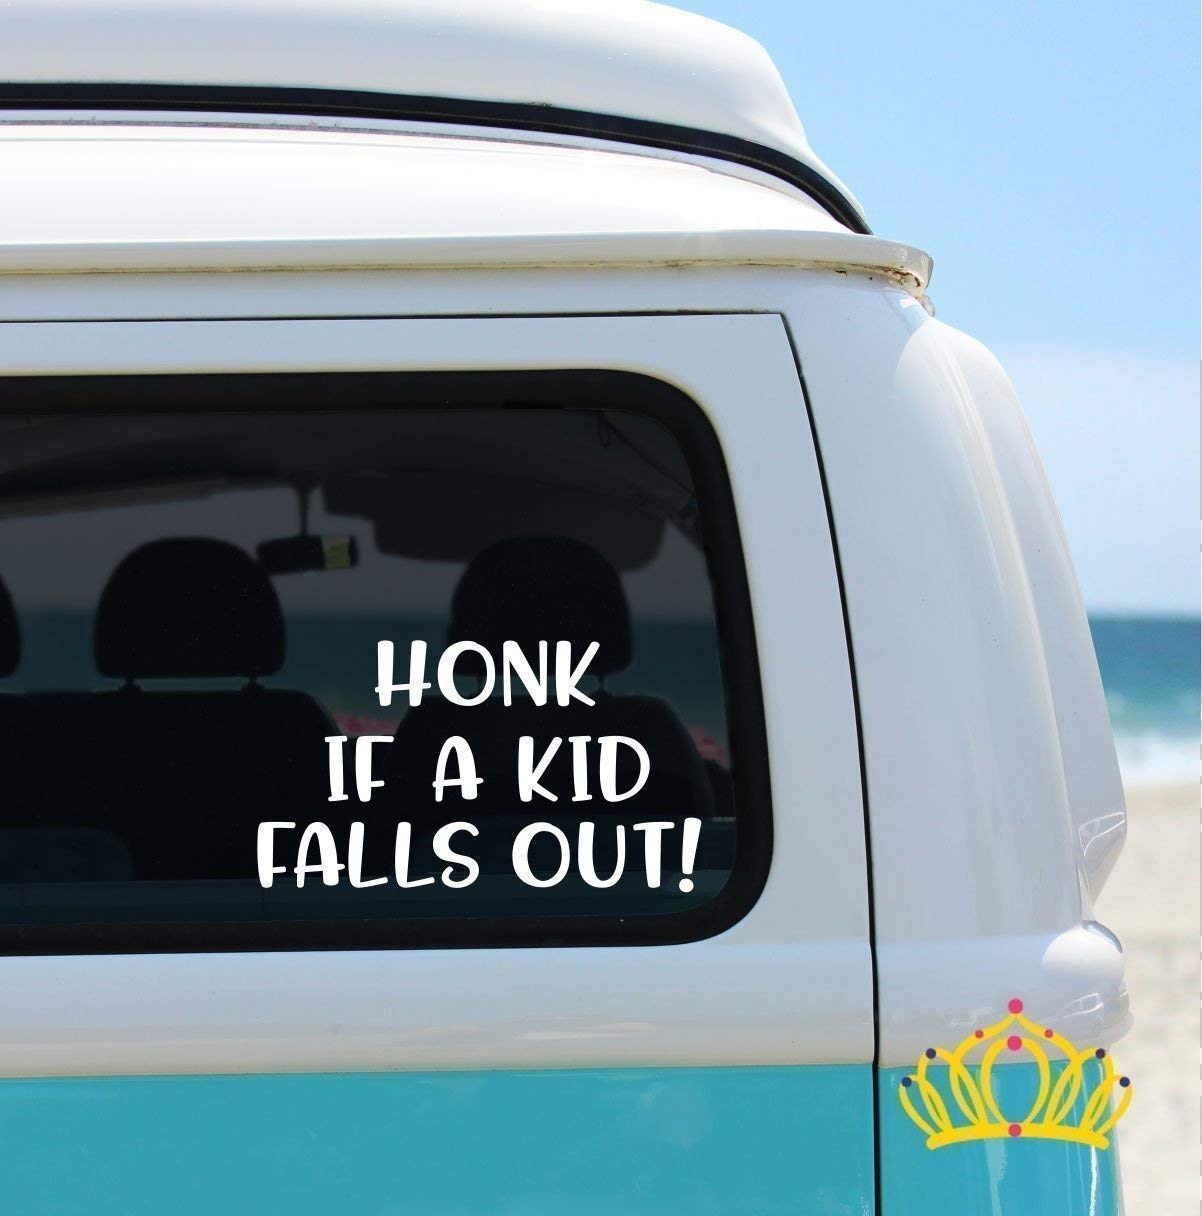 Honk If A Kid Falls Out Funny Car Decal Funny Car Sticker for Mom and Dad